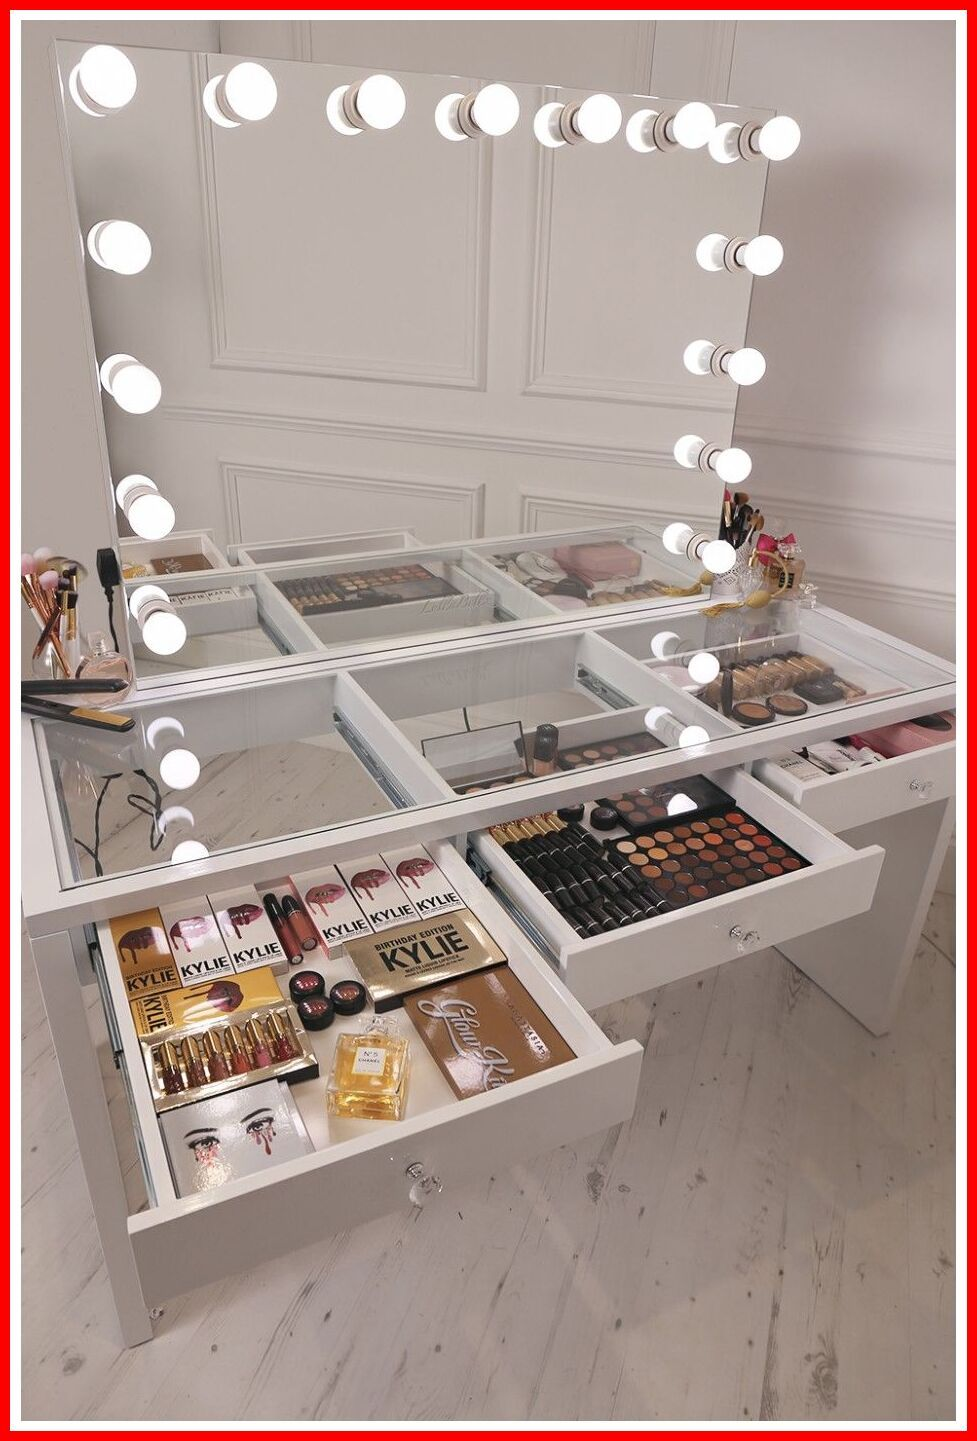 36 Reference Of Vanity Dressing Table With Mirror And Lights In 2020 Makeup Organization Vanity Diy Vanity Mirror Makeup Table Vanity